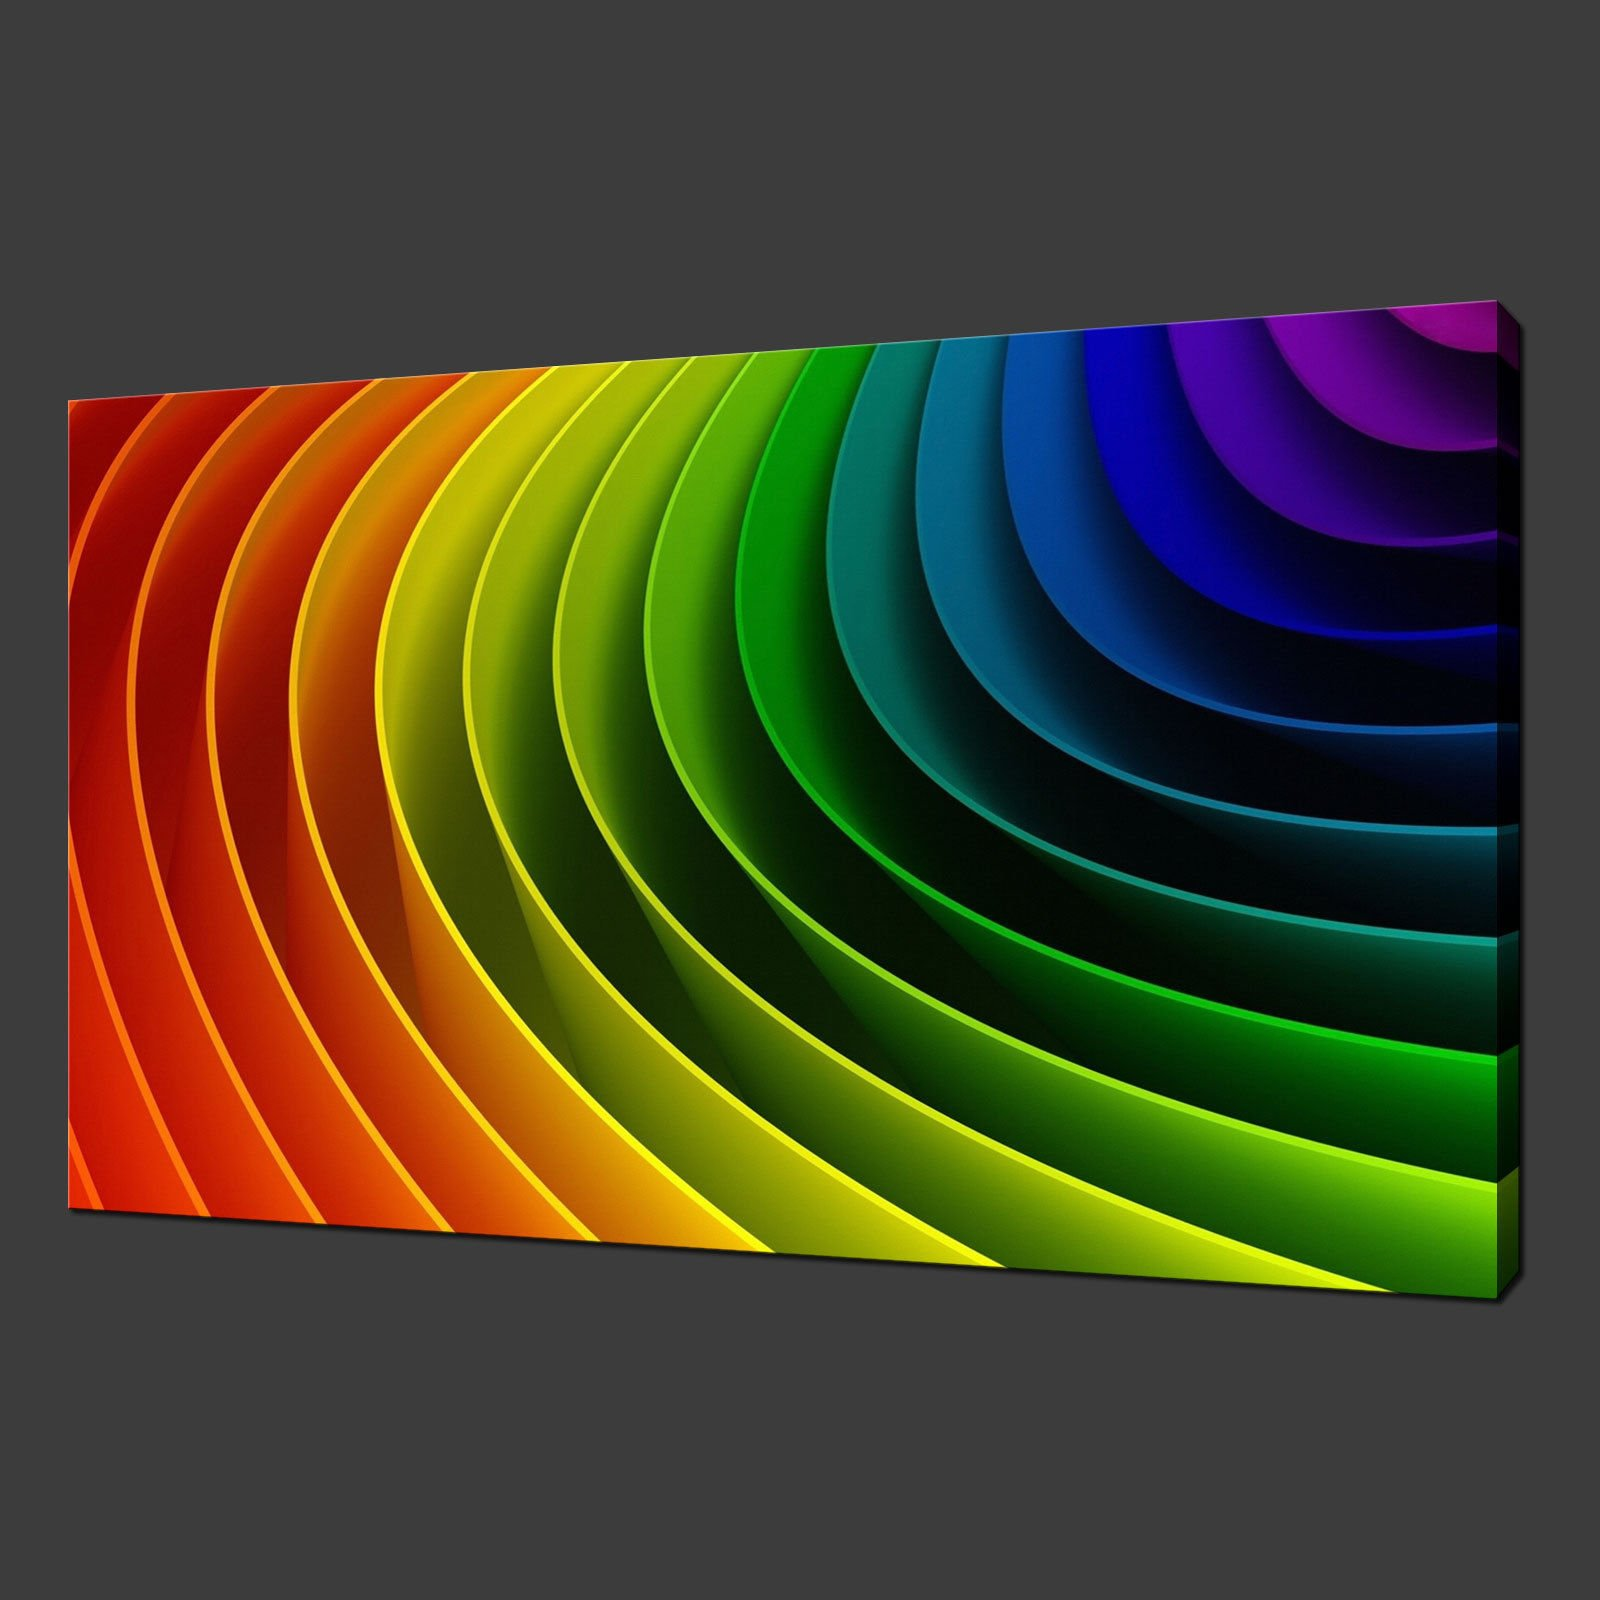 COLOURFUL RIBBONS CANVAS PICTURE PRINT